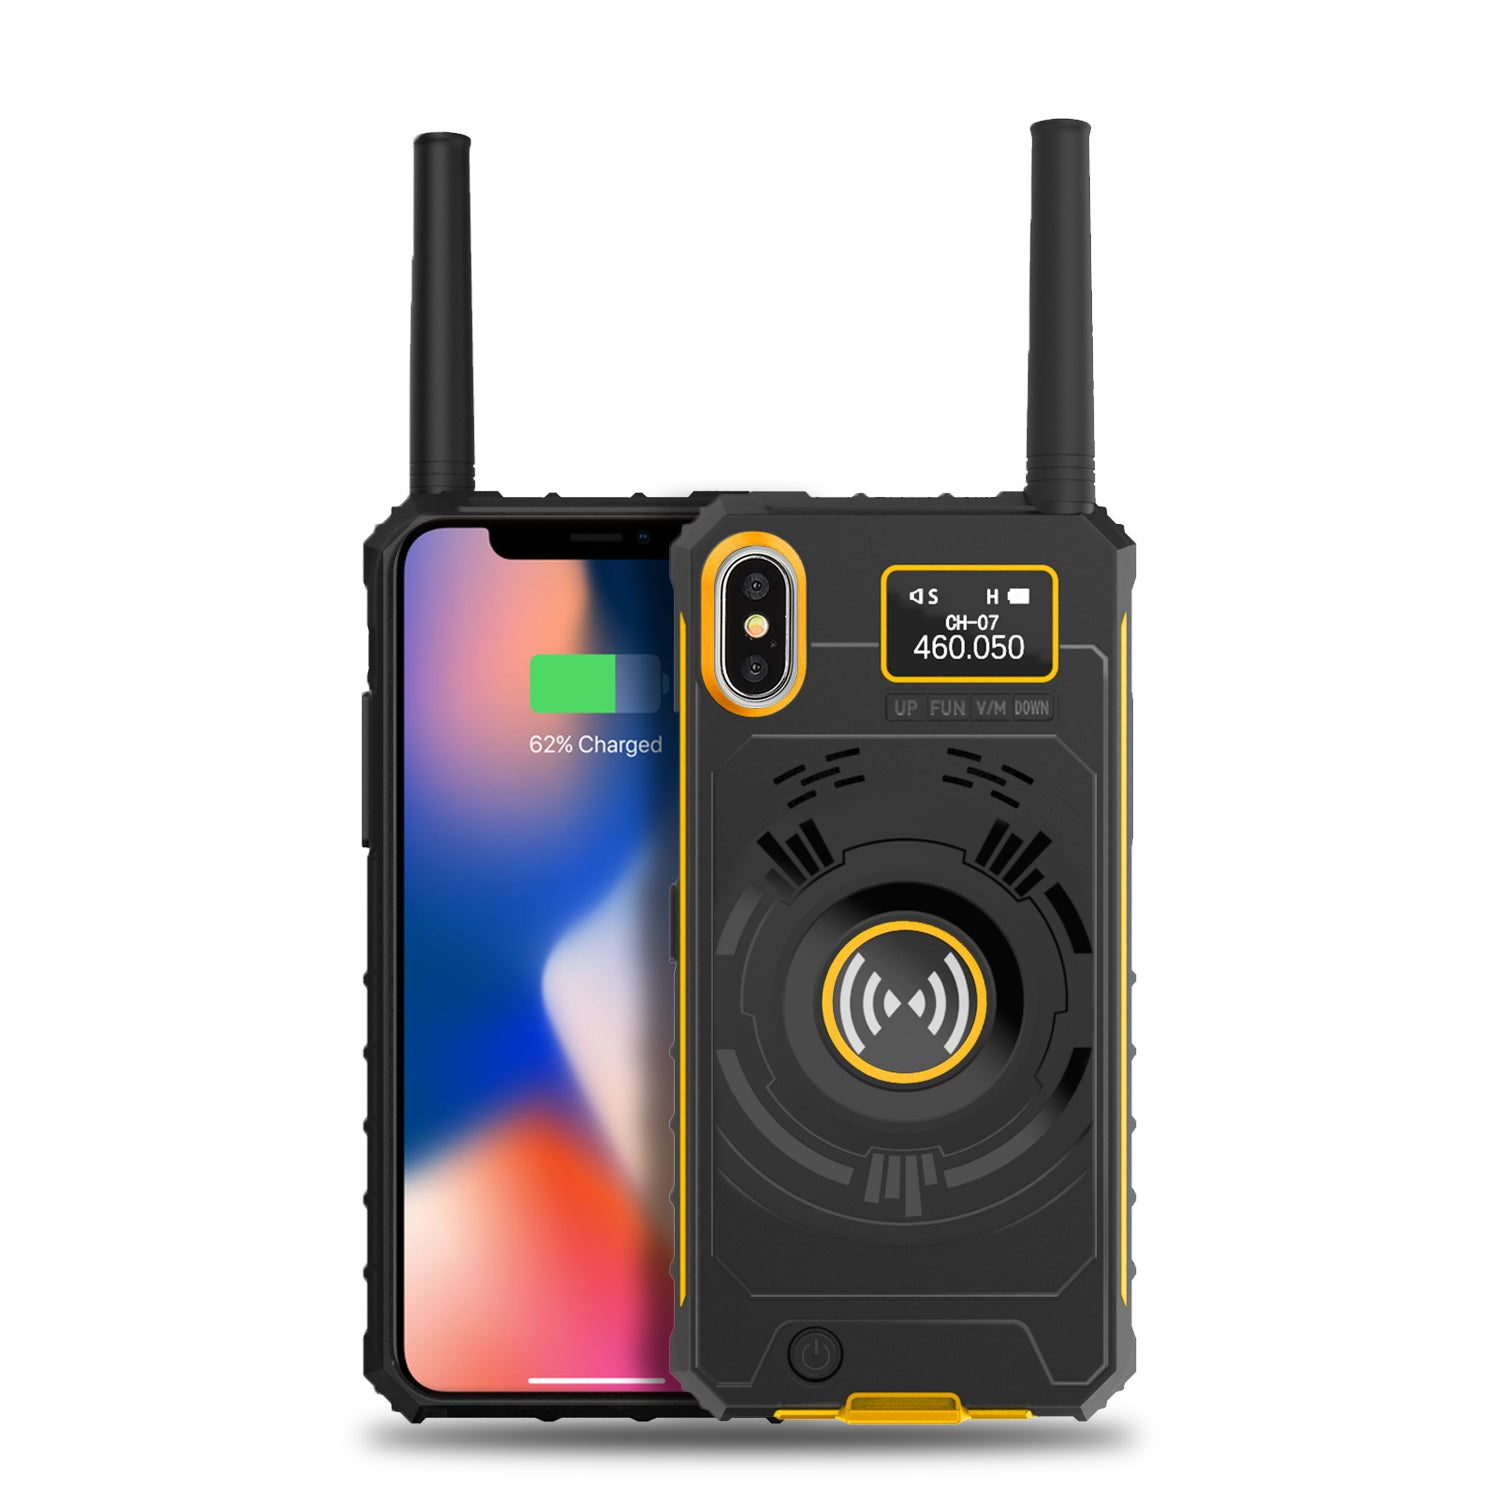 Radioddity Handheld UHF Radio | Extended Battery | Cell Phone Case for iPhone X/Xs - Radioddity